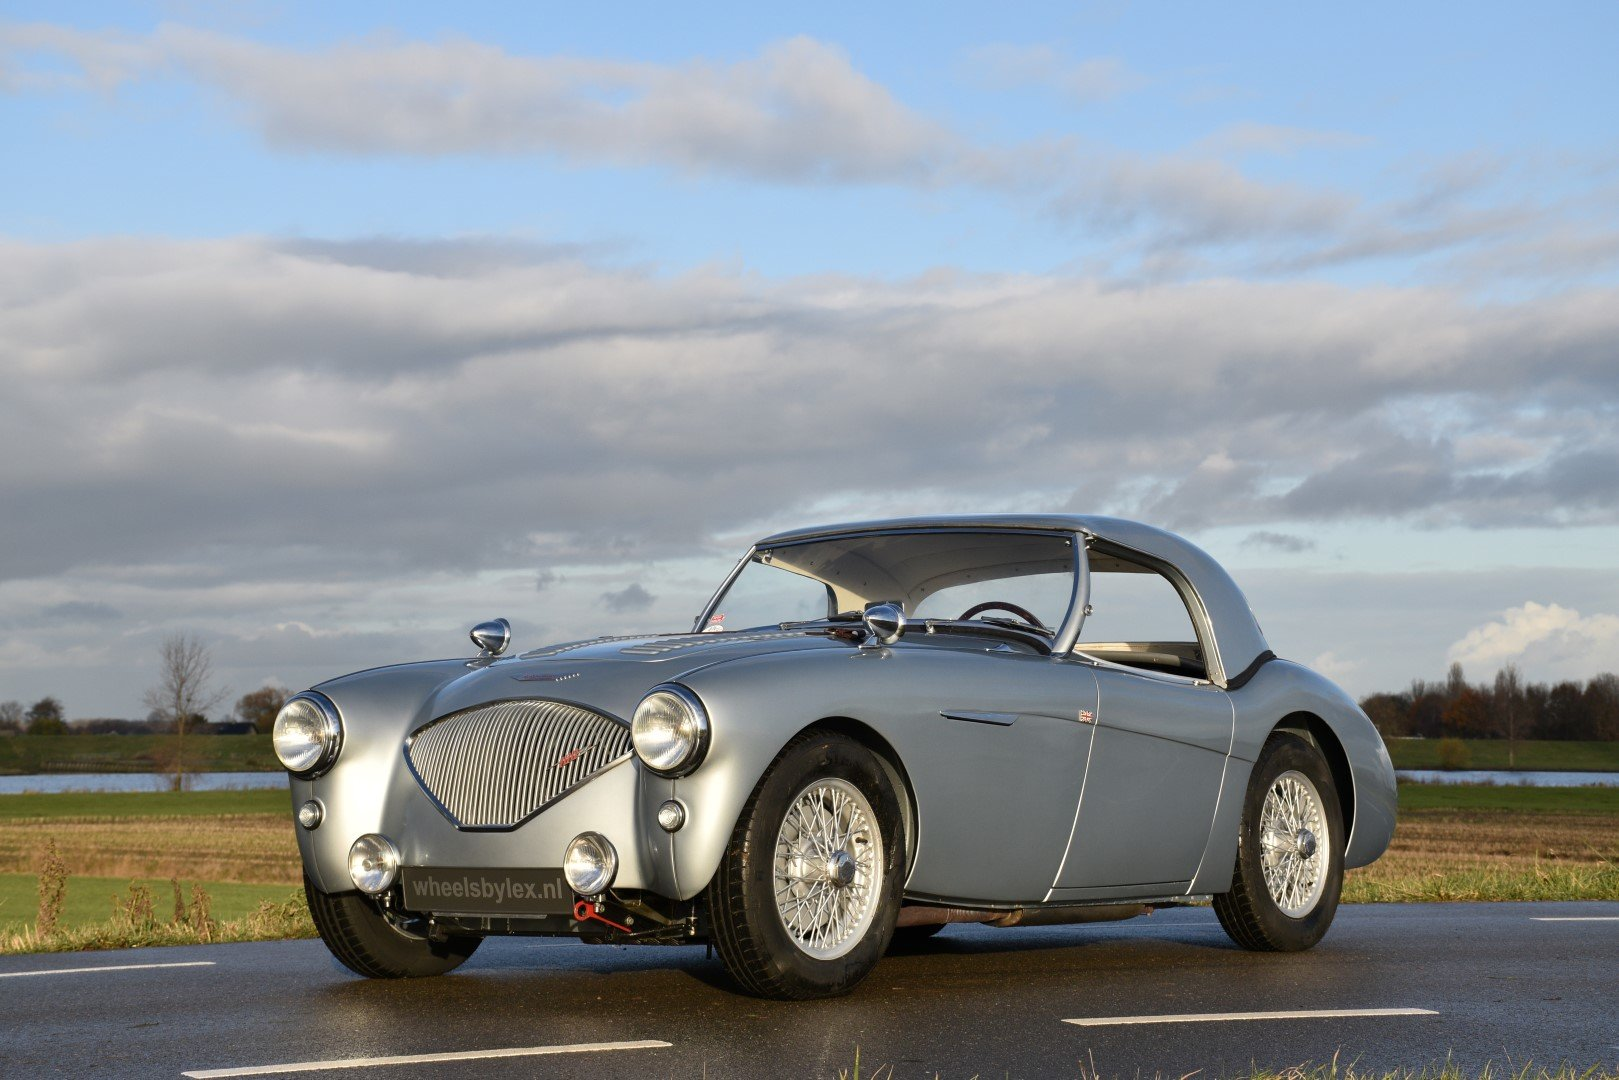 1955 Austin Healey 100-4 BN1  For Sale (picture 1 of 6)